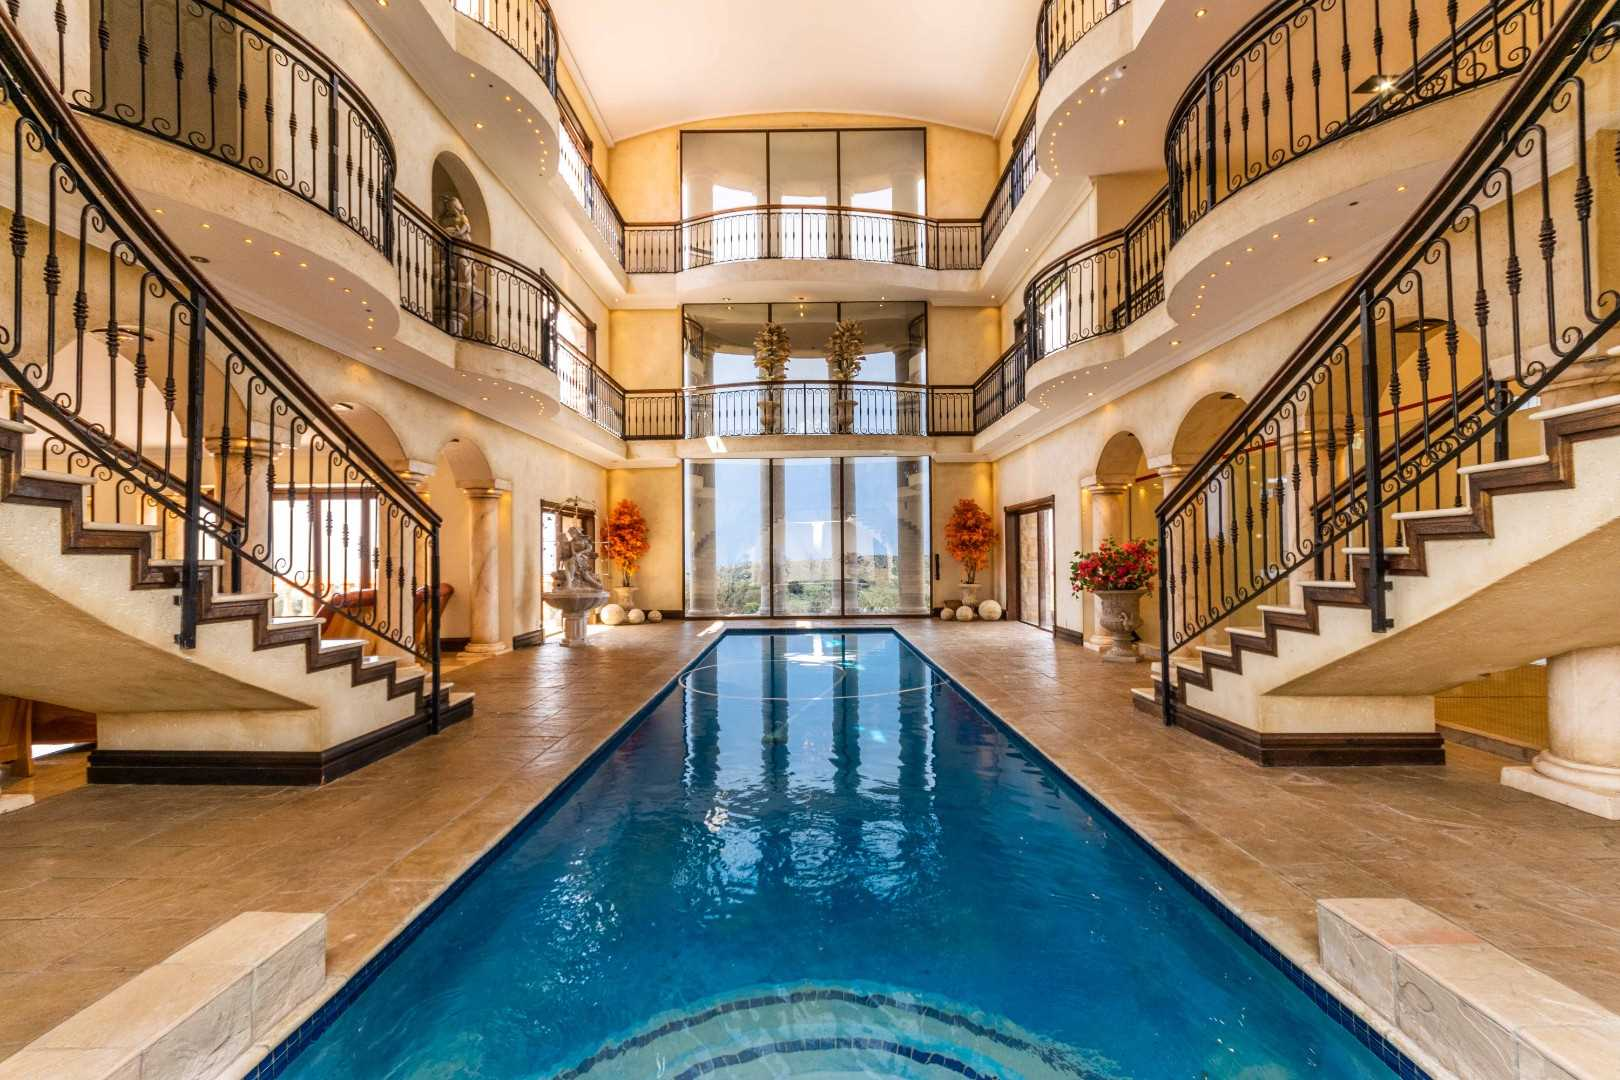 Heated Pool at the Heart of Mansion